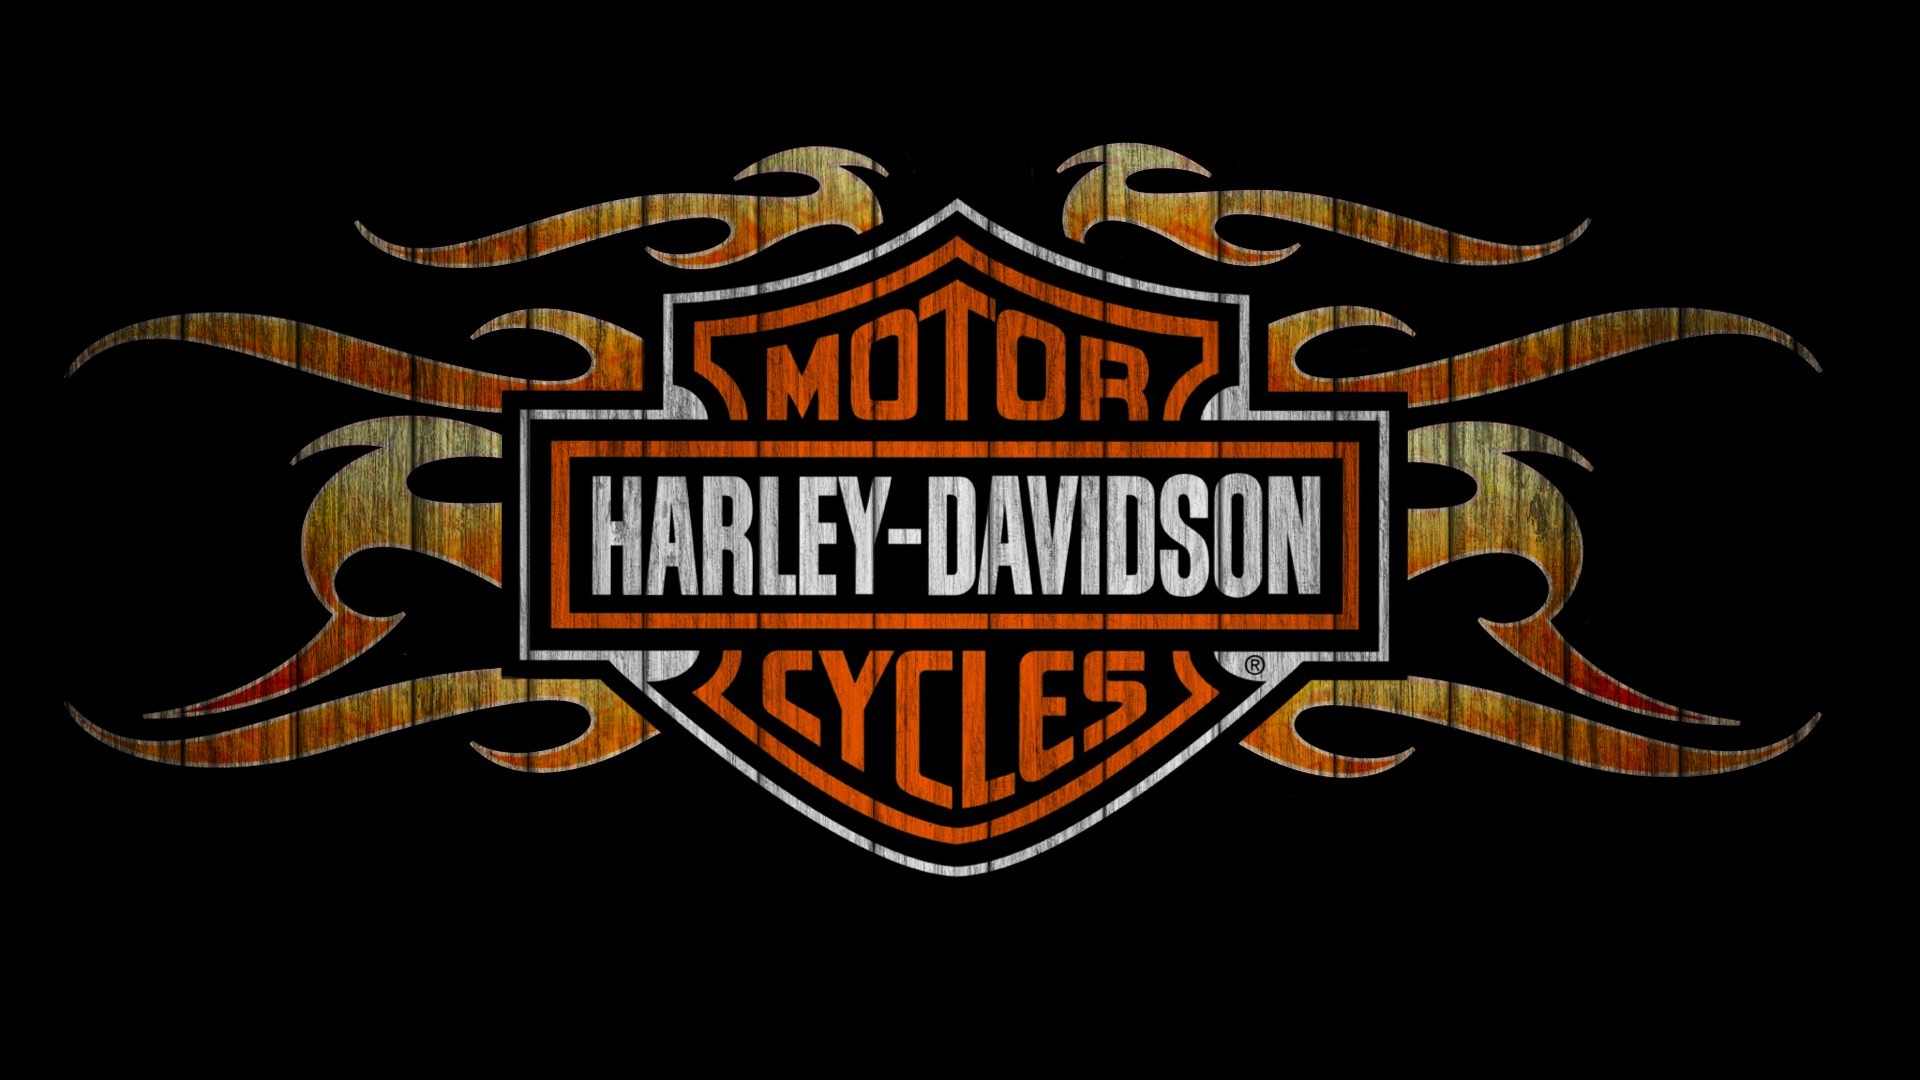 Harley davidson wallpapers 1920x1080 2017 03 28 high resolution wallpapers harley davidson wallpaper 1431933 ololoshenka pinterest harley davidson wallpaper and high voltagebd Choice Image